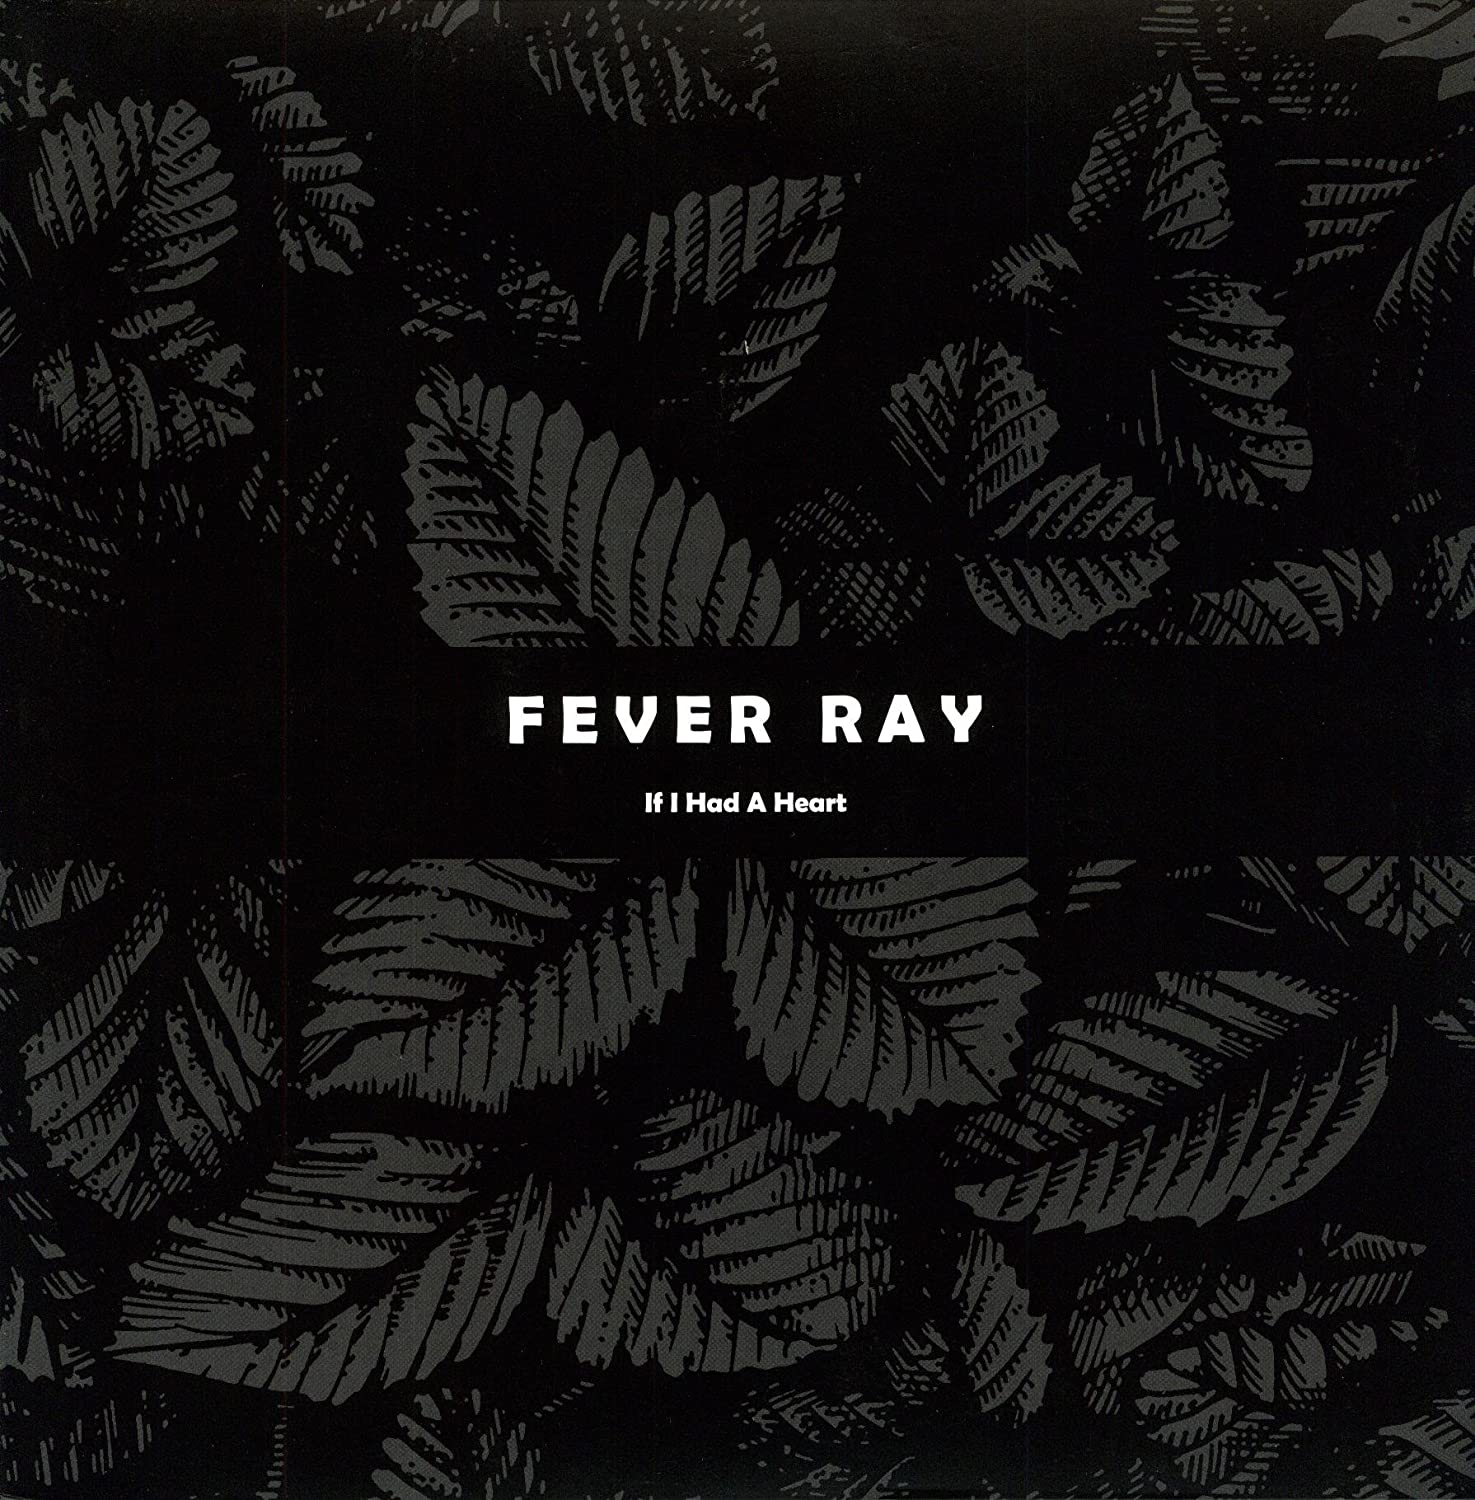 fever ray if i had a heart mp3 download free